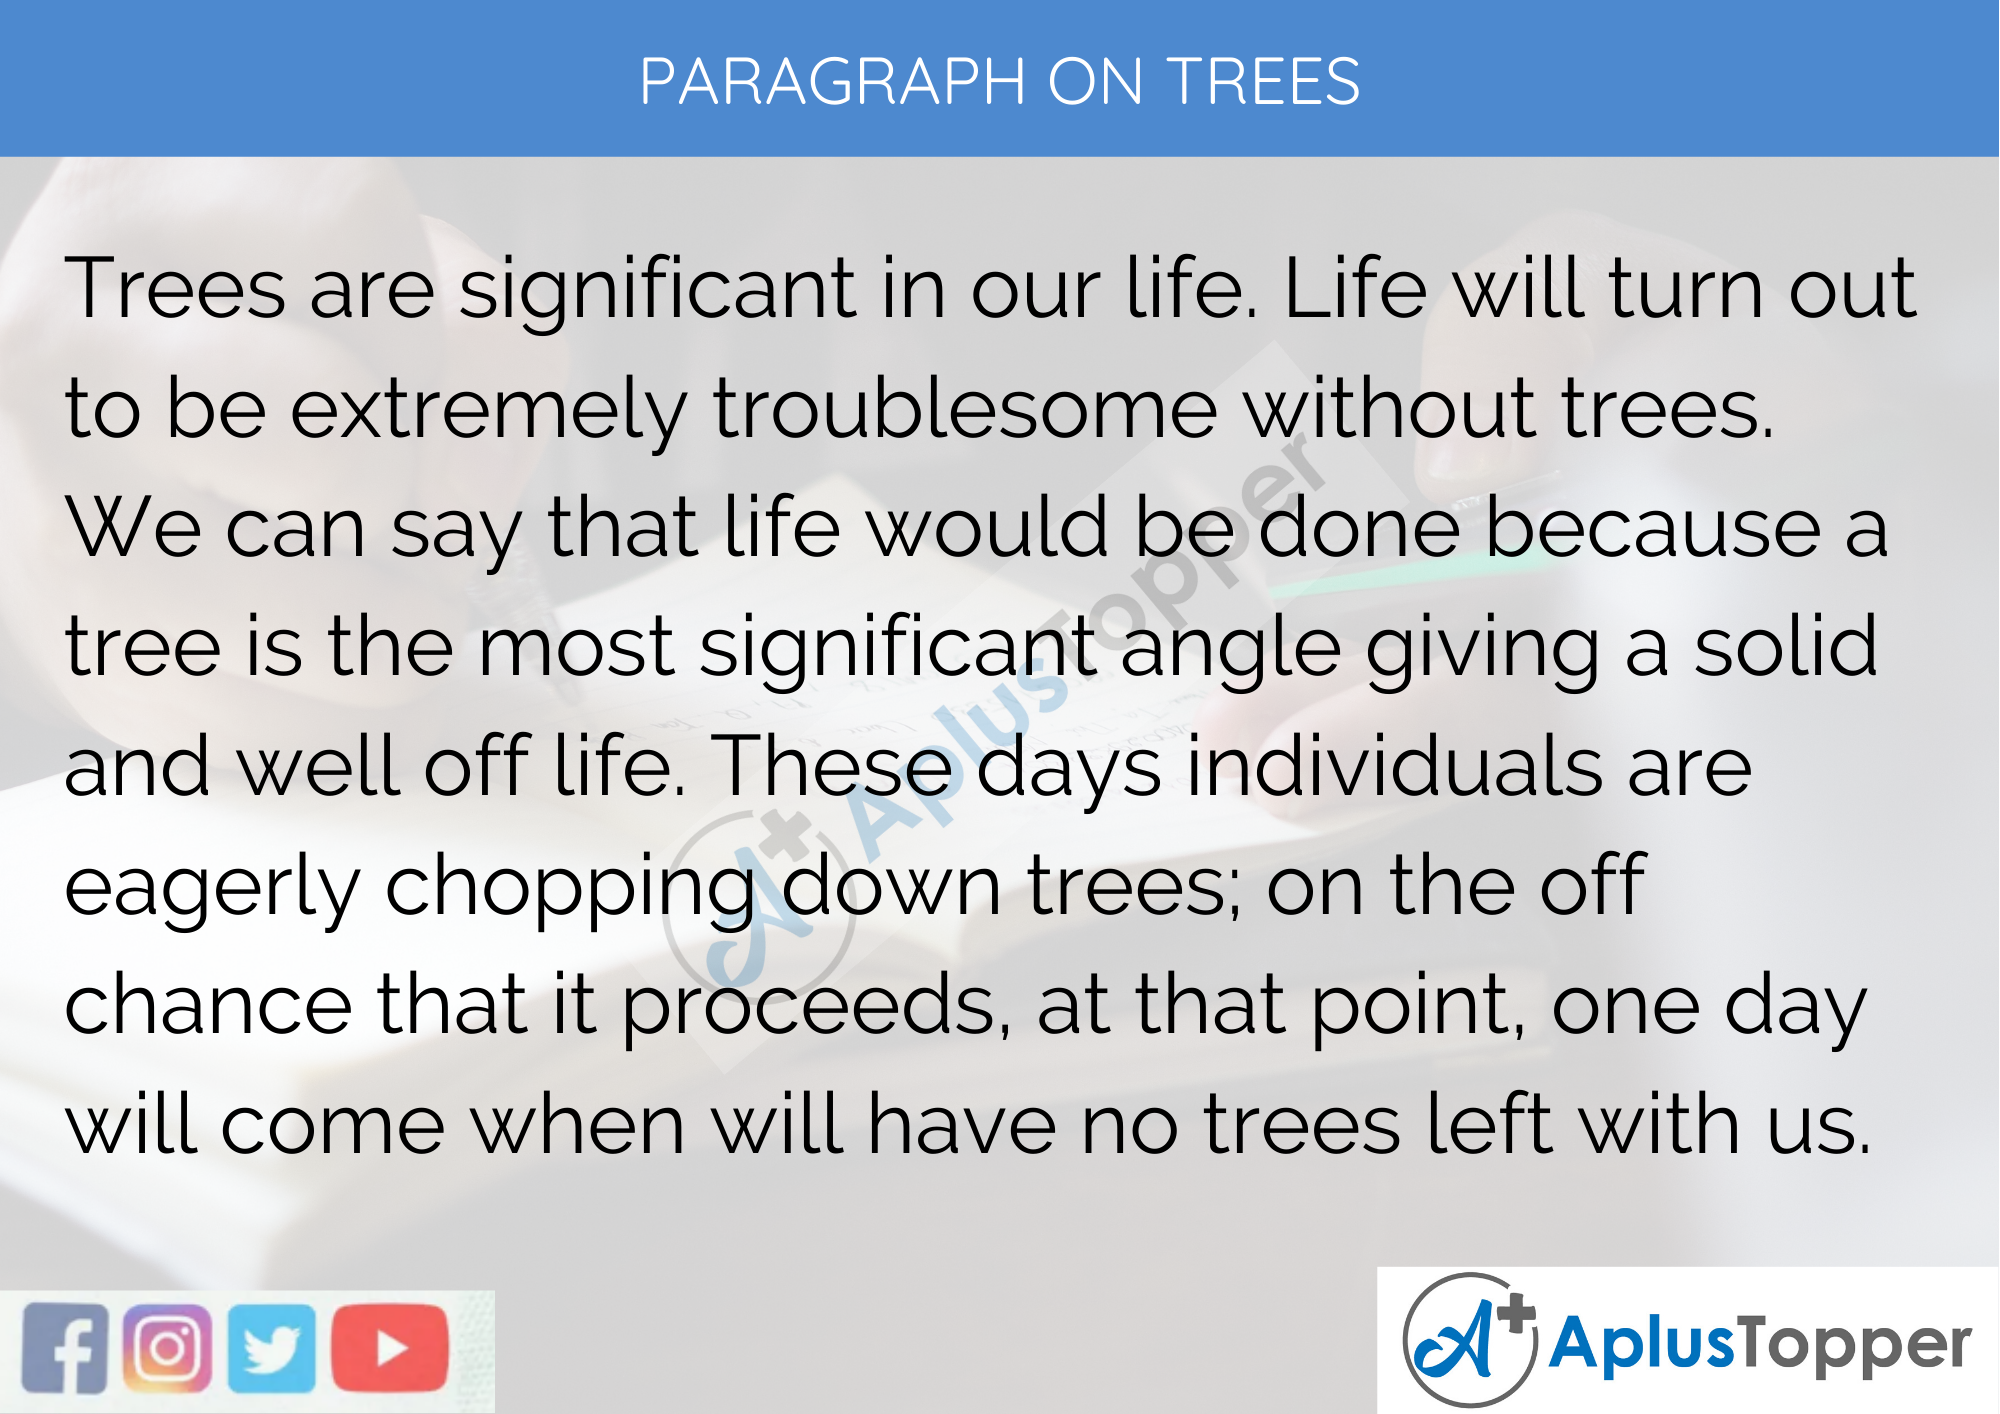 Paragraph On Trees - 100 Words for Classes 1, 2, 3 Kids